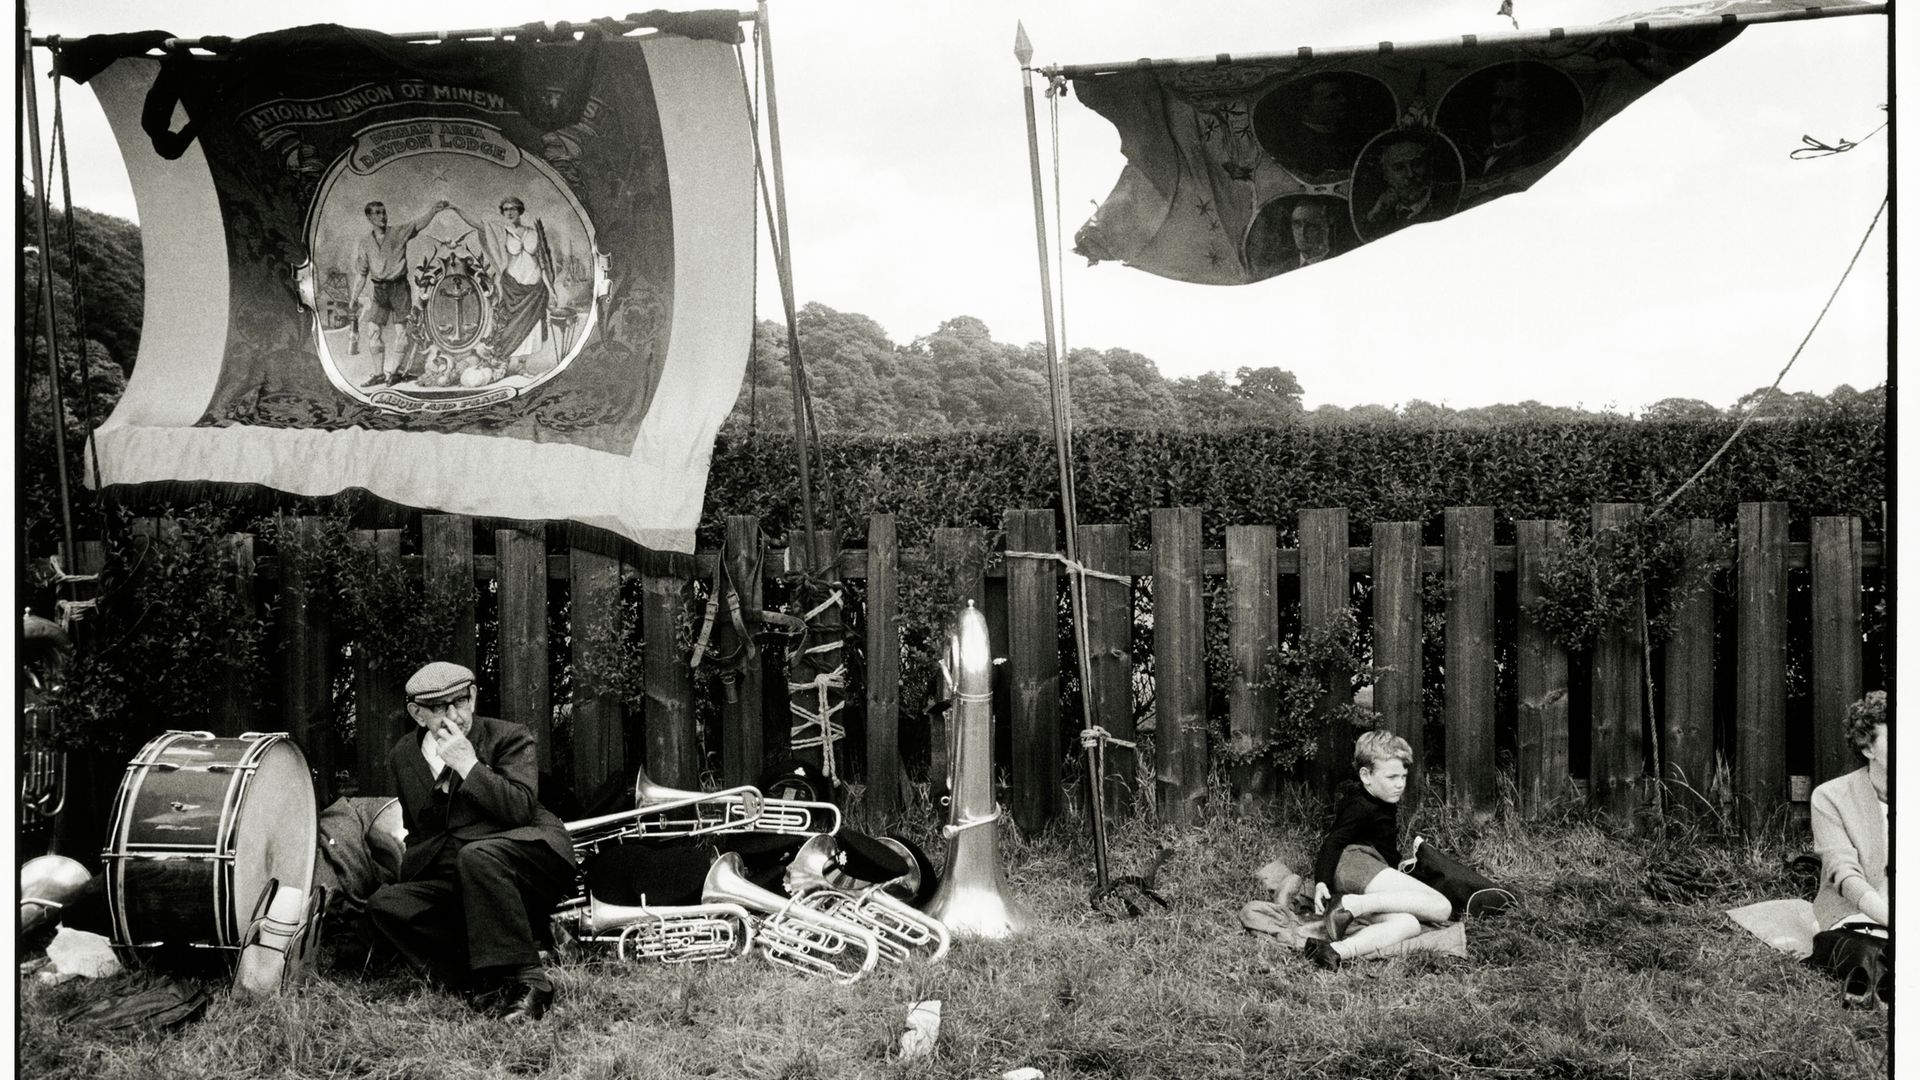 Trade union banners fly as people rest amid musical instruments during the 1969 Durham Miners' Gala, a major union gathering. The image was taken by Tony Ray-Jones, a photographer known for capturing the unguarded moments of people from all sections of British society - Credit: SSPL via Getty Images